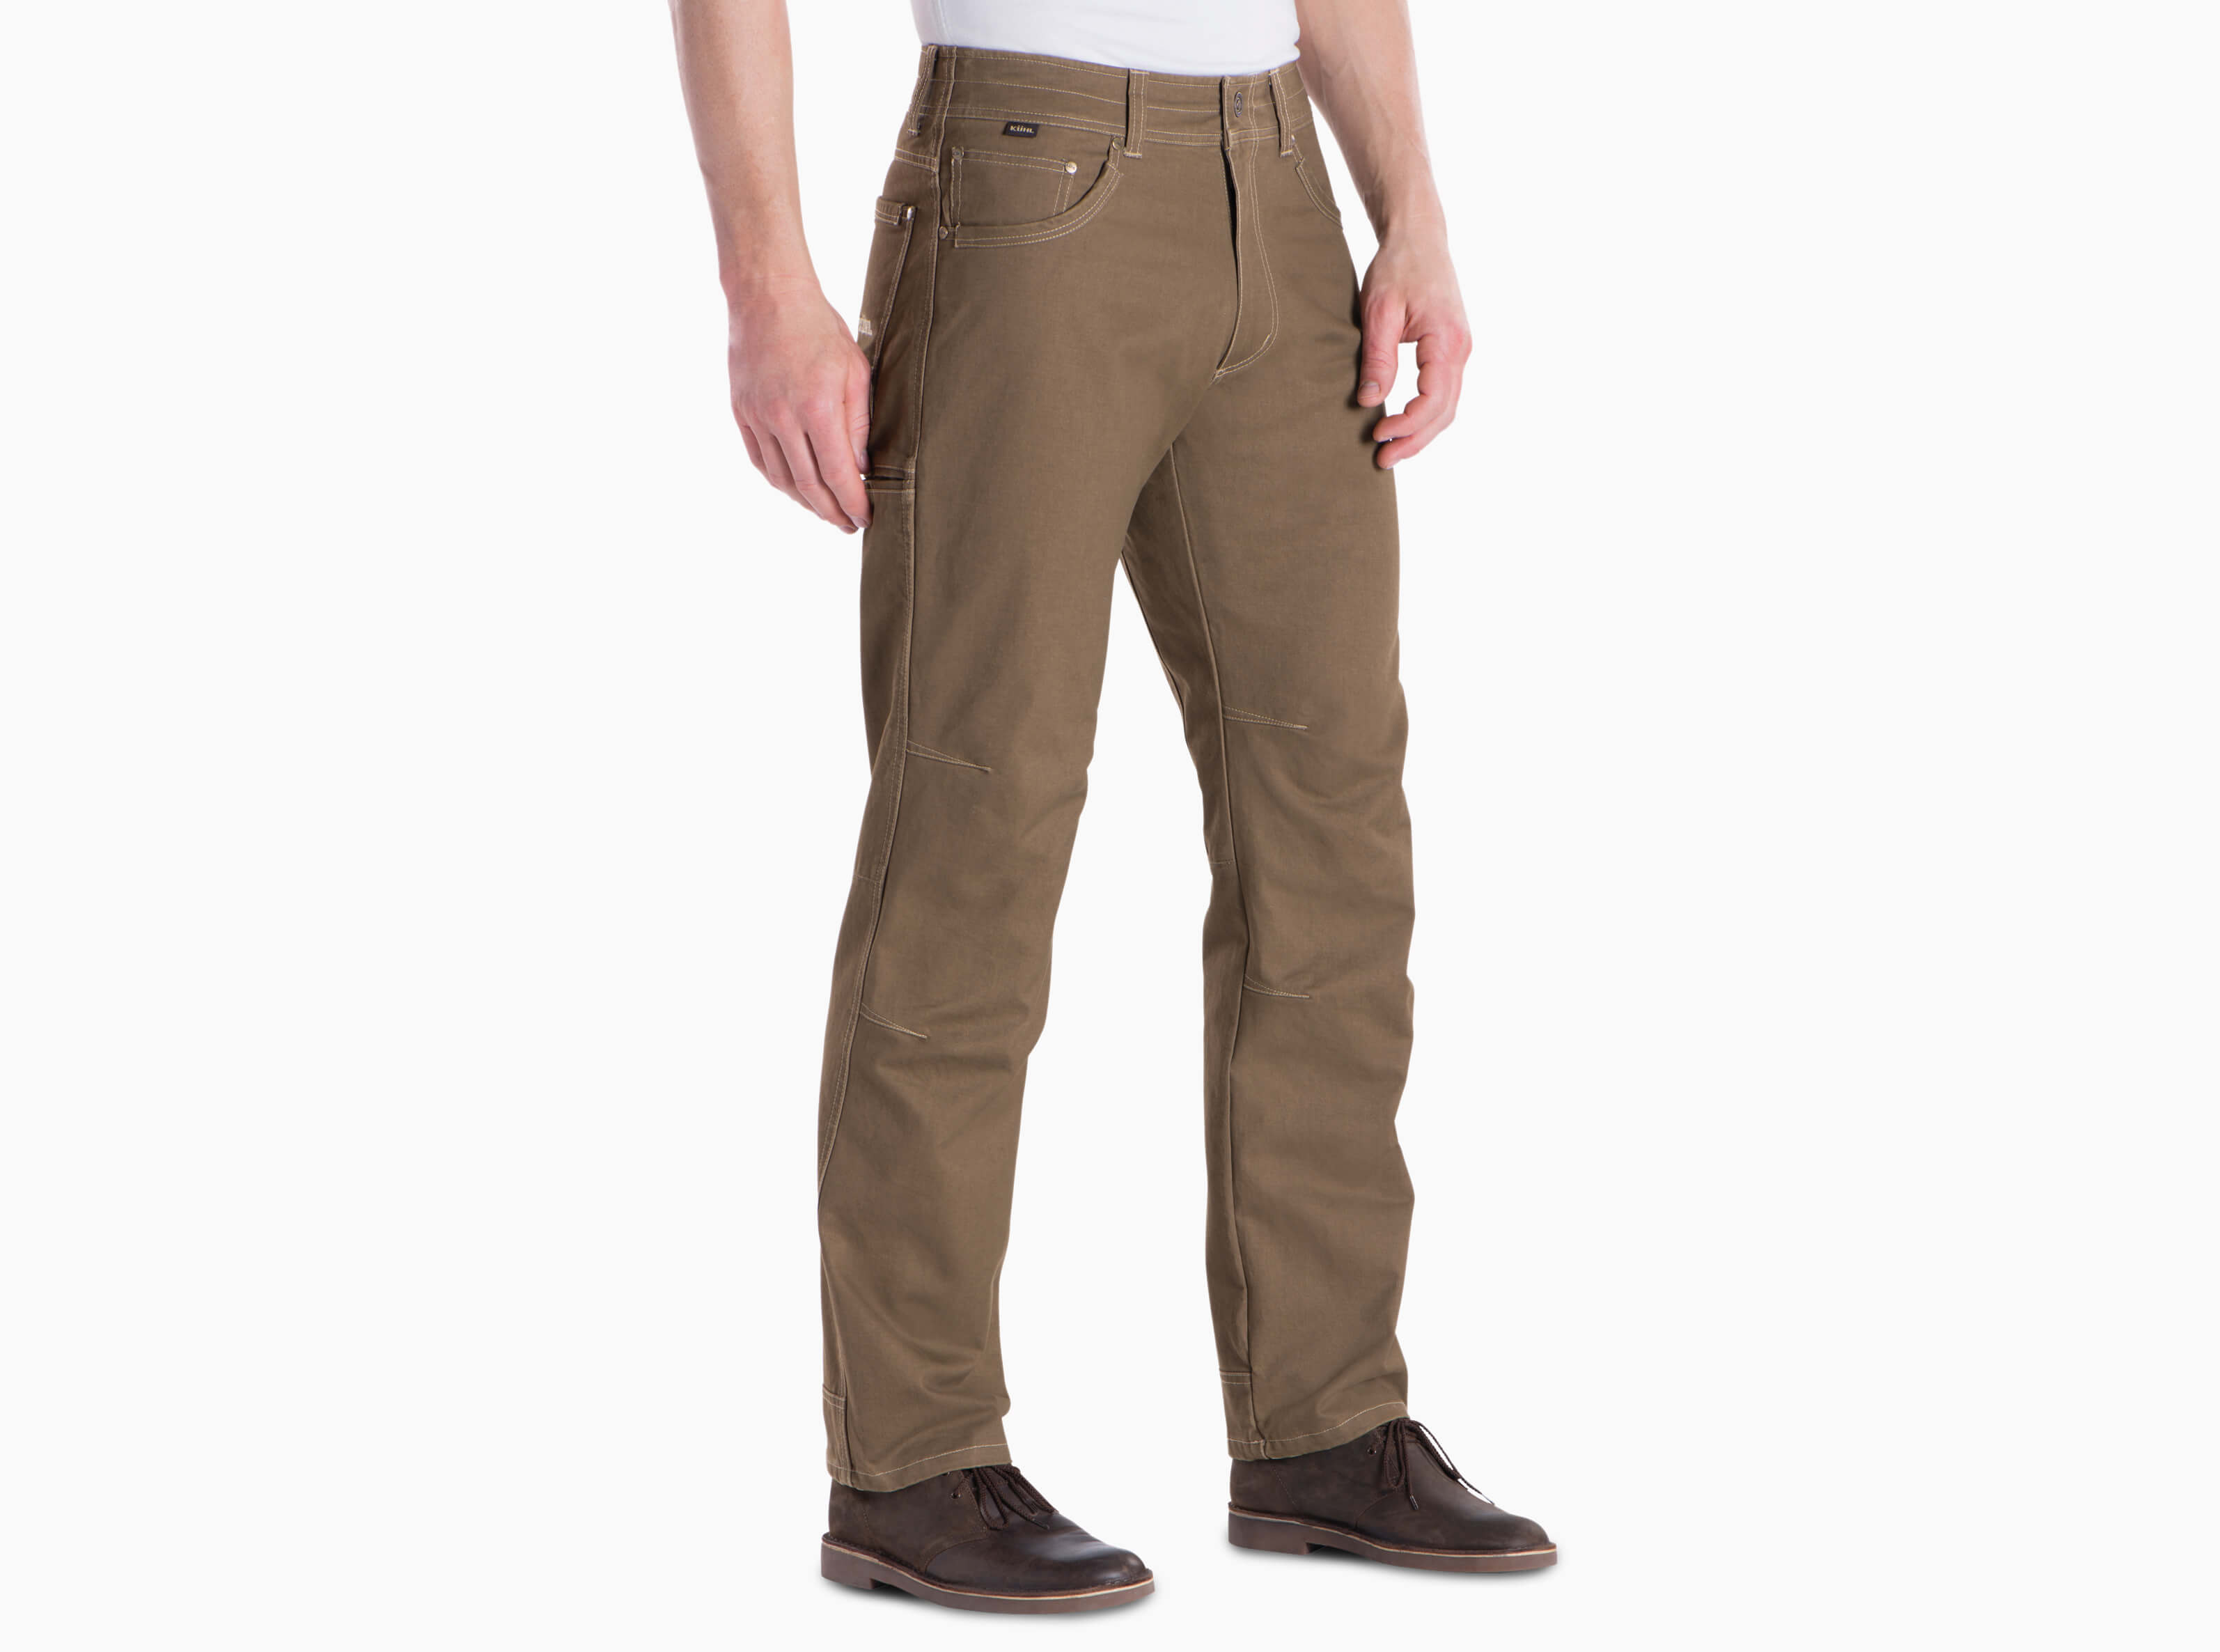 'Kuhl' Hot Rydr Lined Pants - Dark Khaki